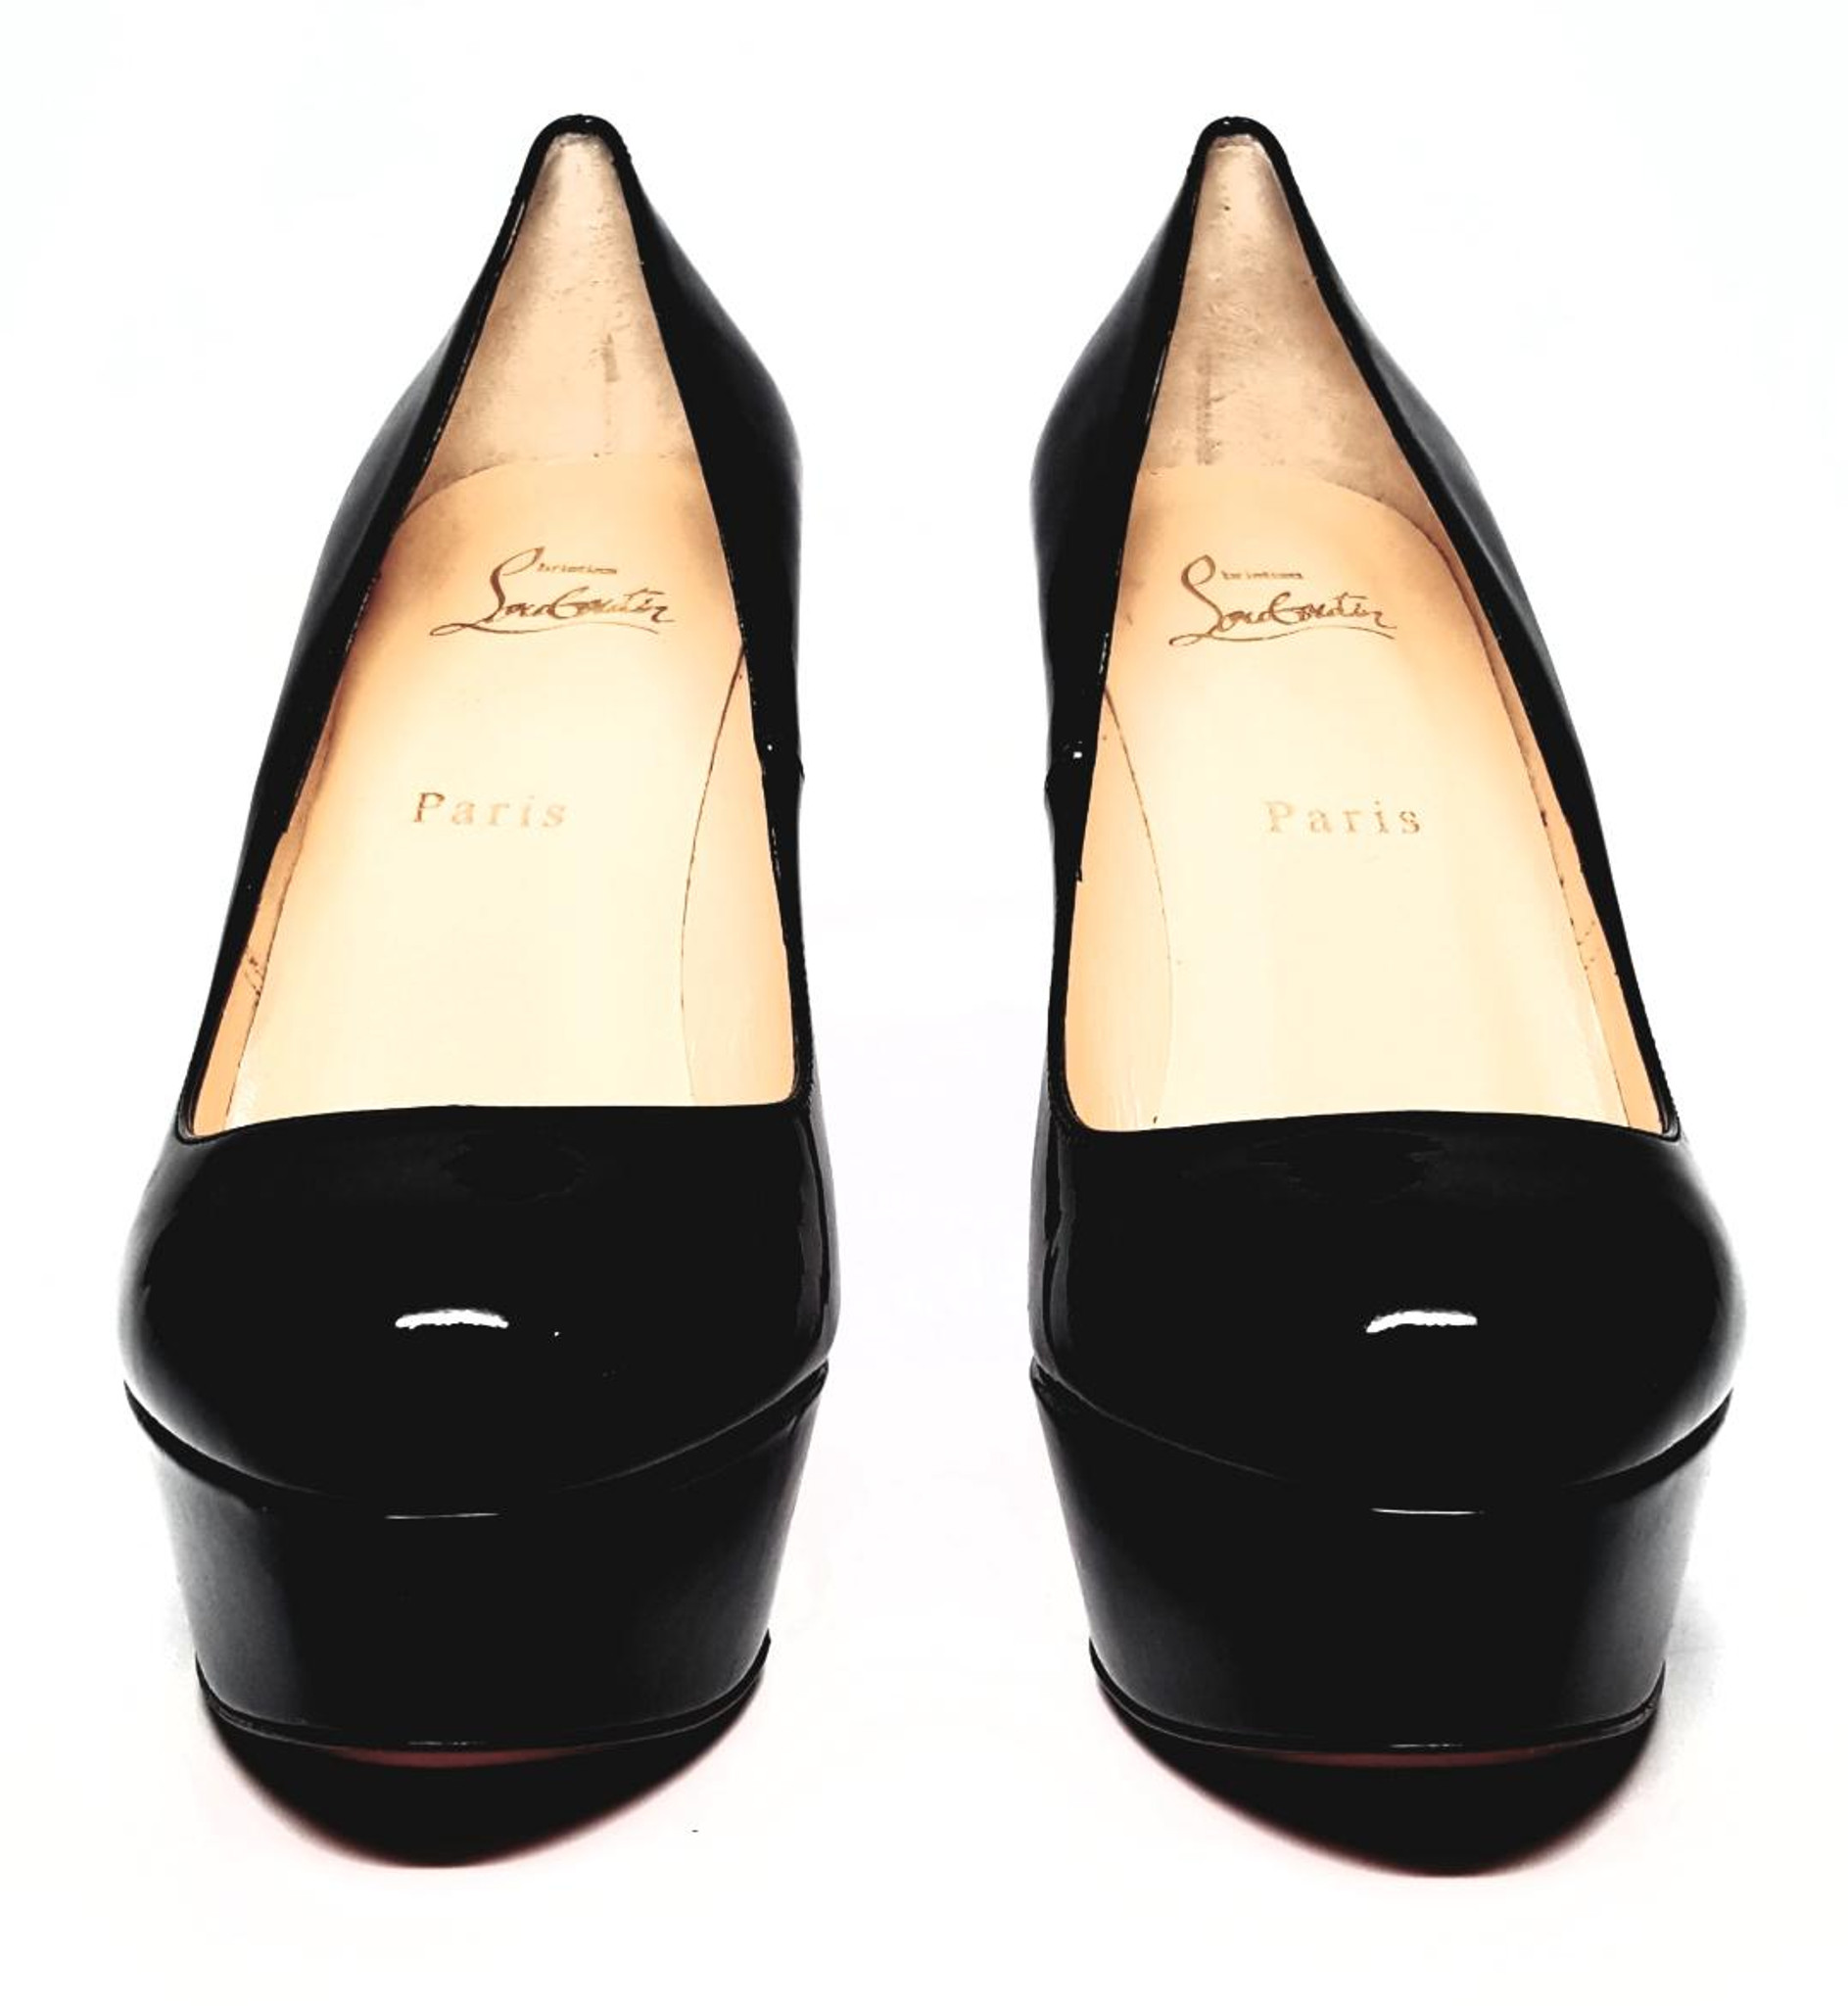 reputable site 01164 51542 Christian Louboutin Black Patent Leather Bianca Heel - Size US 8 - New